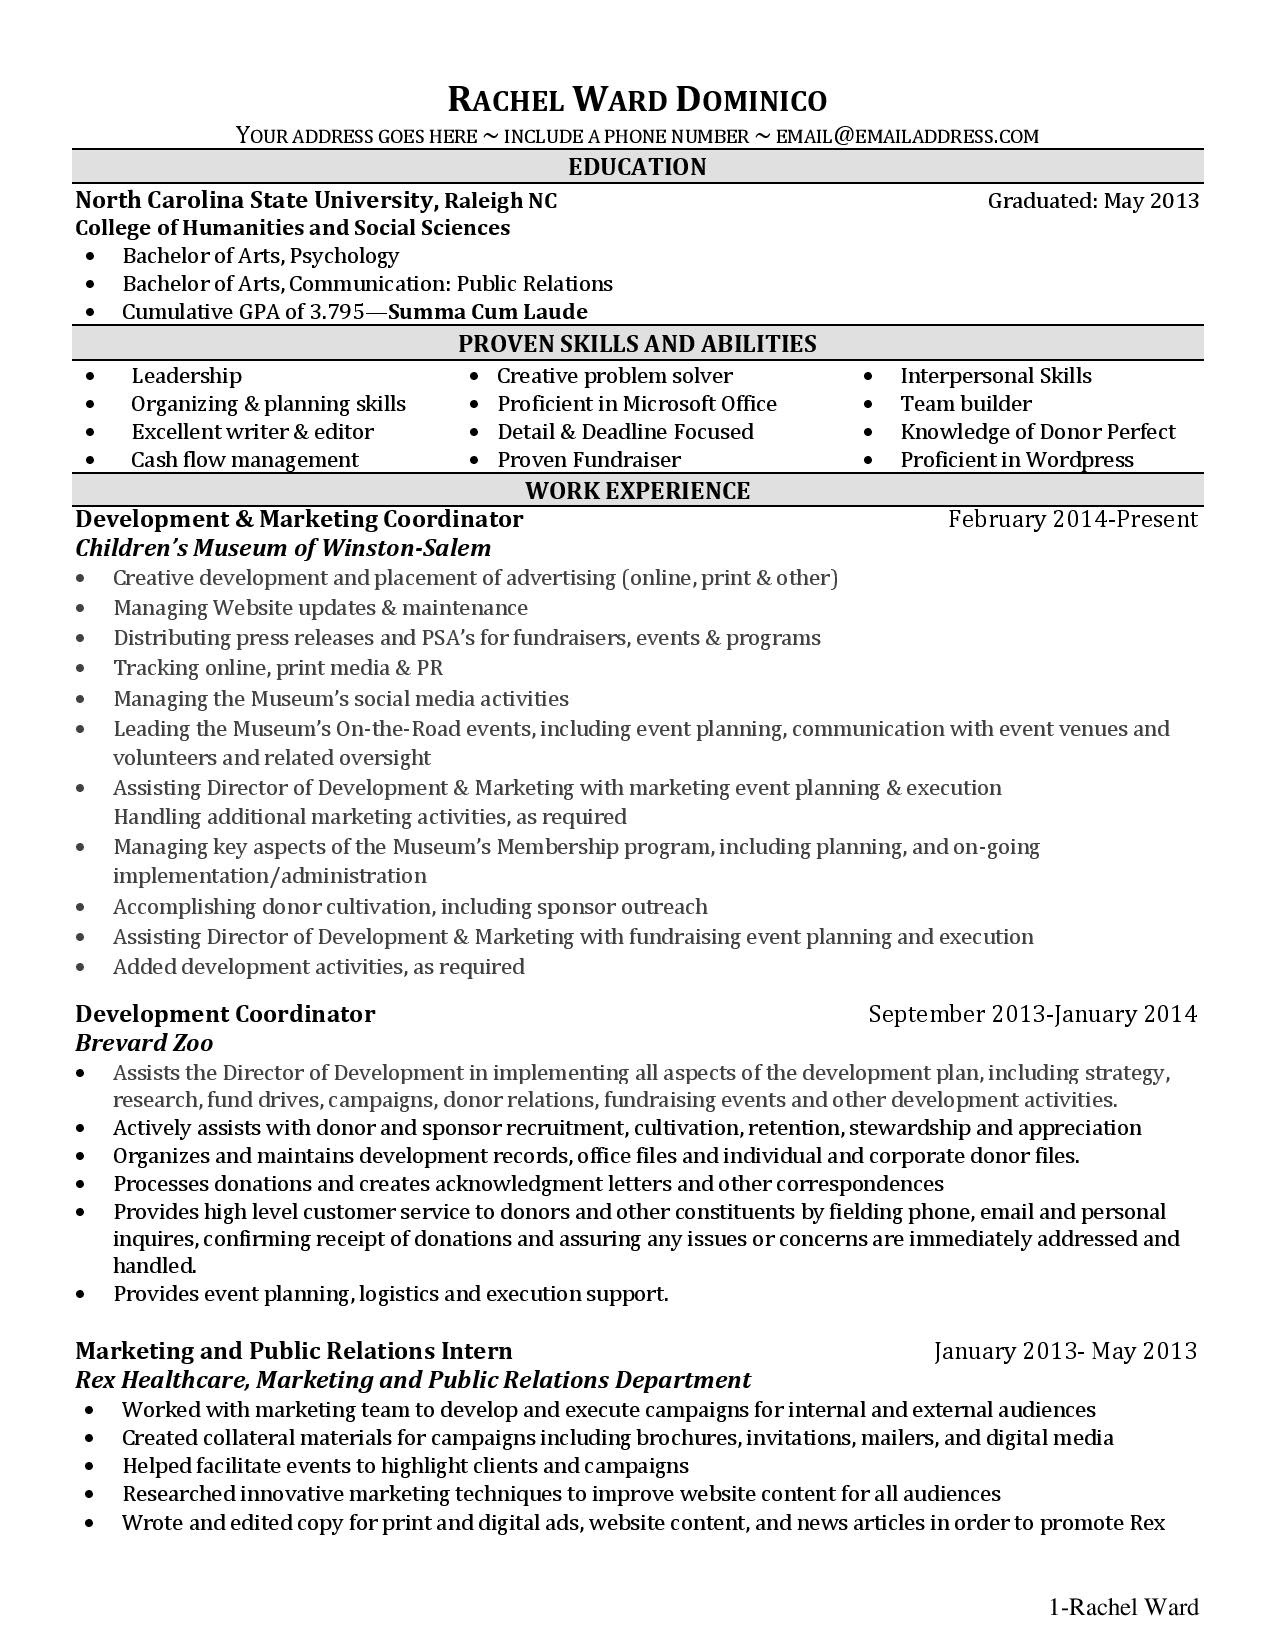 Incomplete Degree On Resume  Talktomartyb